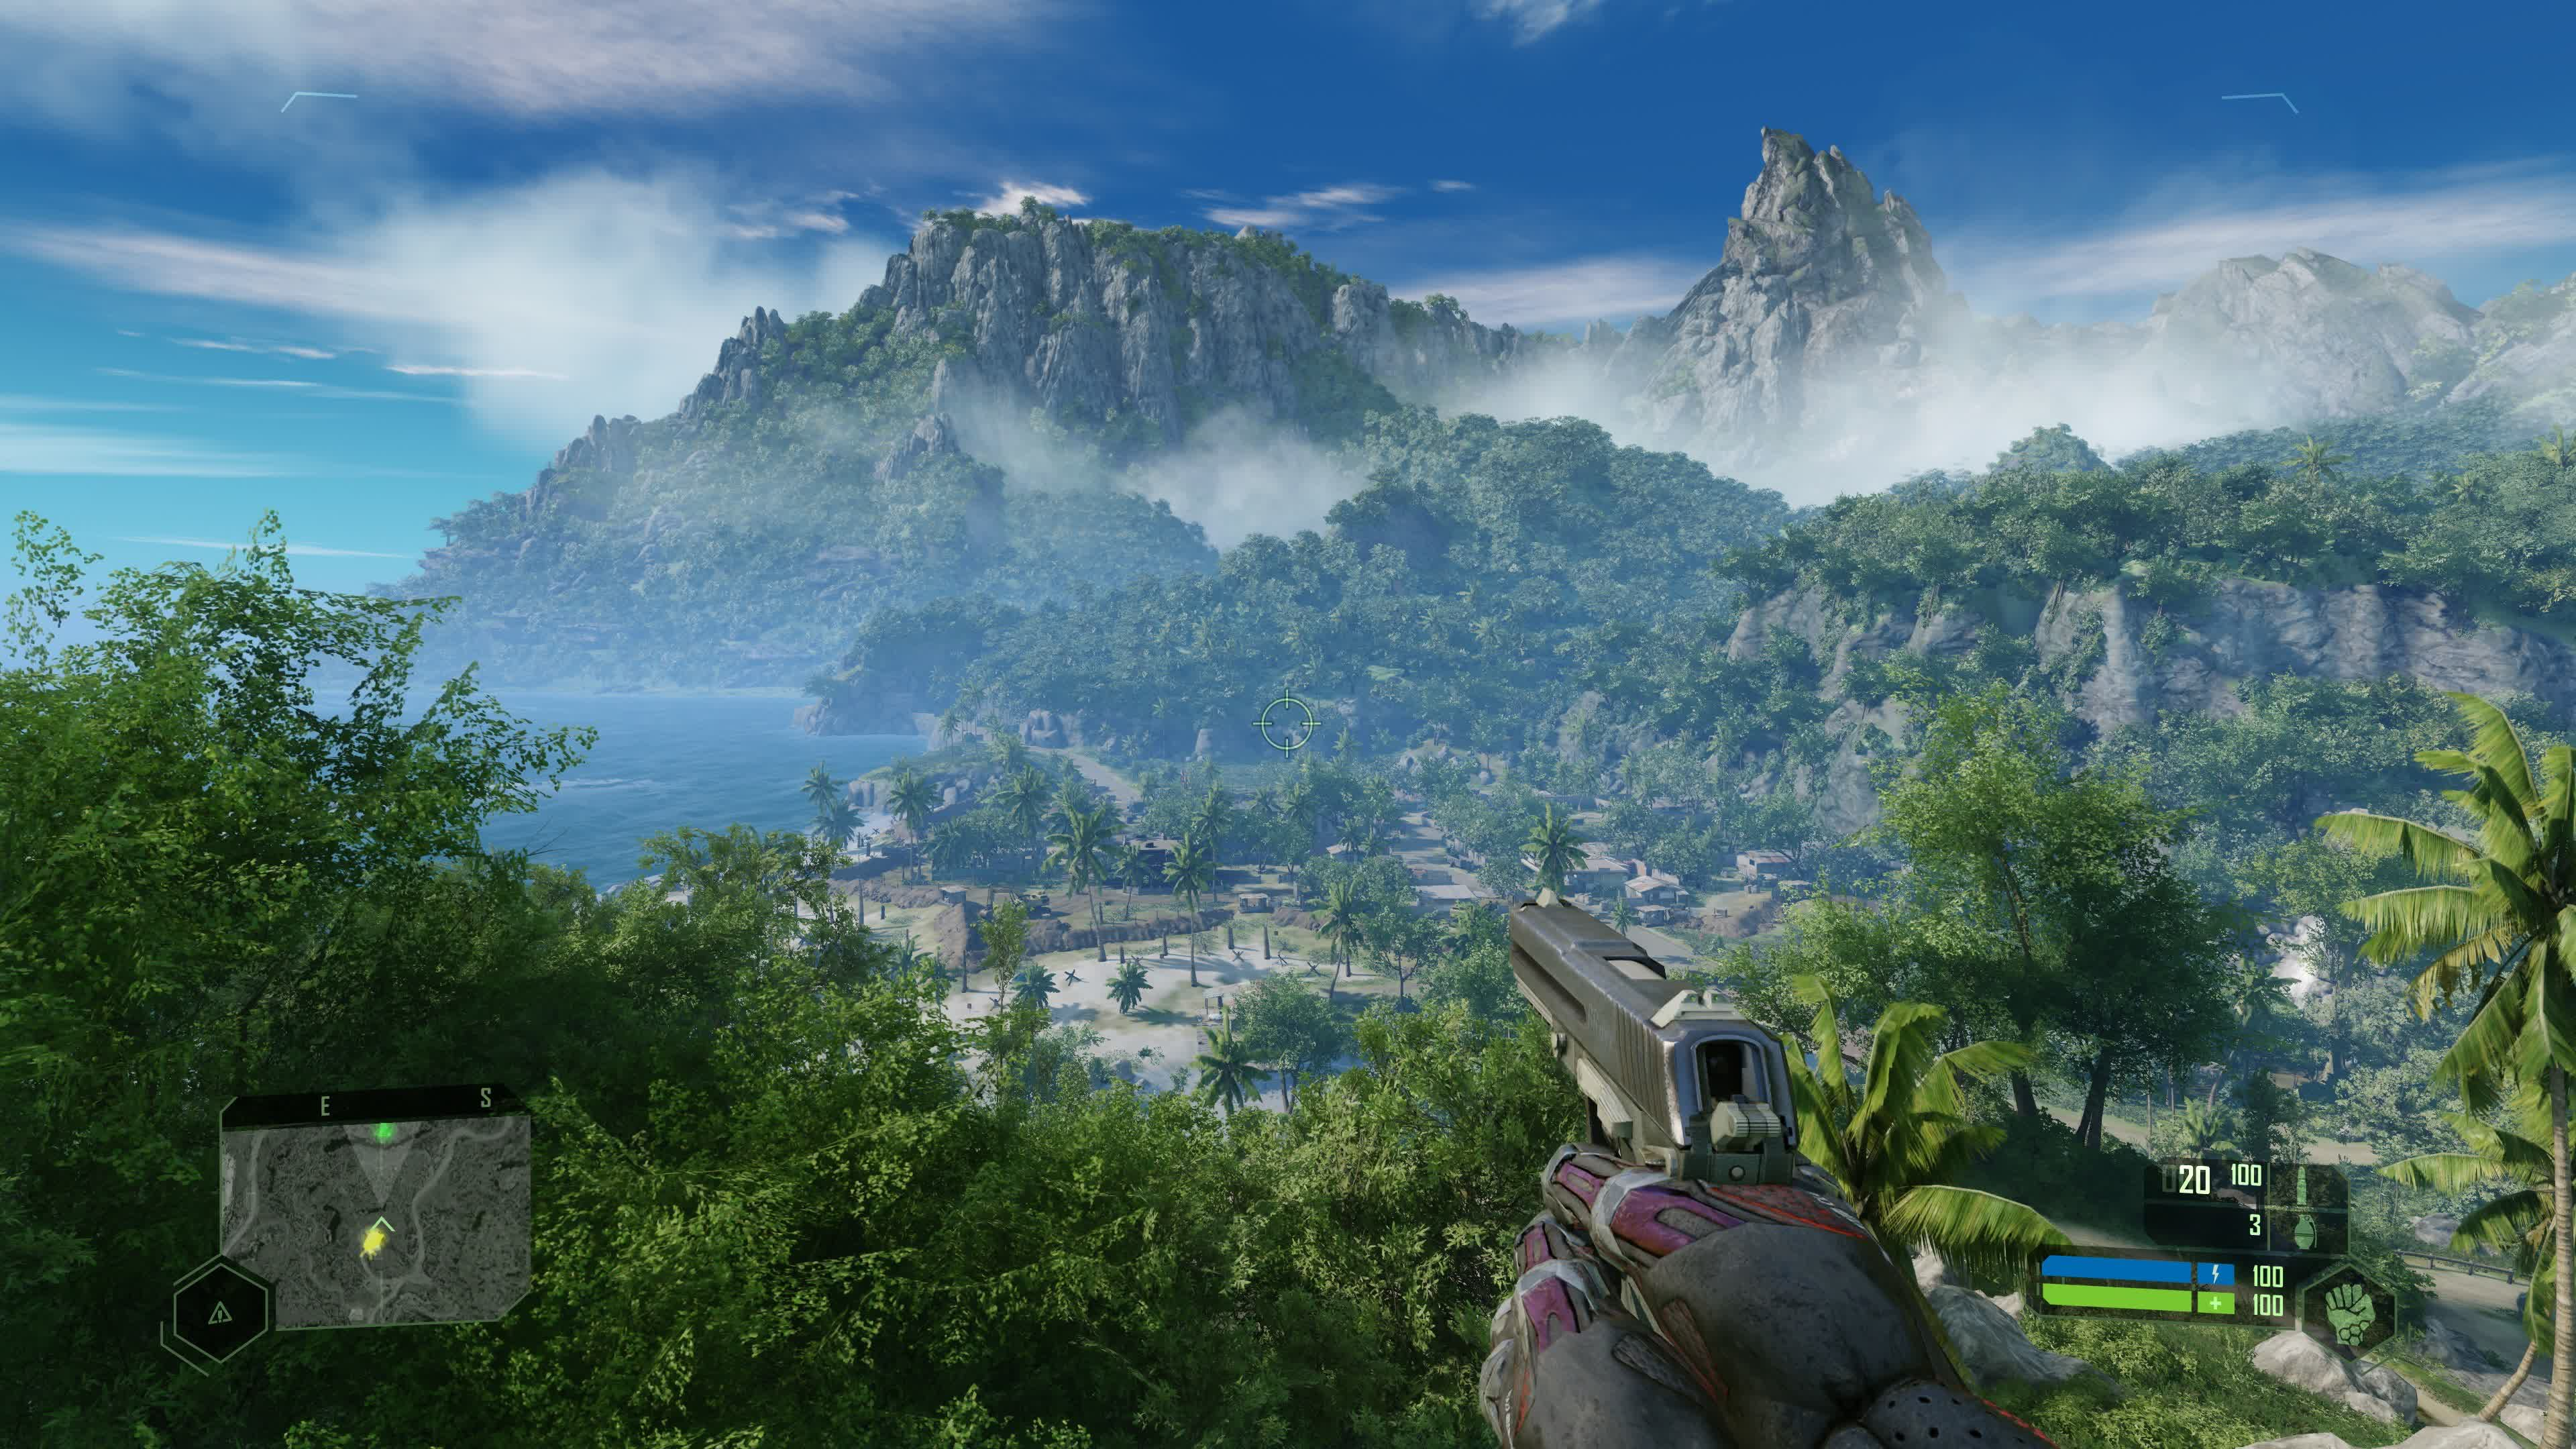 Crysis Remastered brings ray tracing to current-gen consoles, non-RTX GPUs